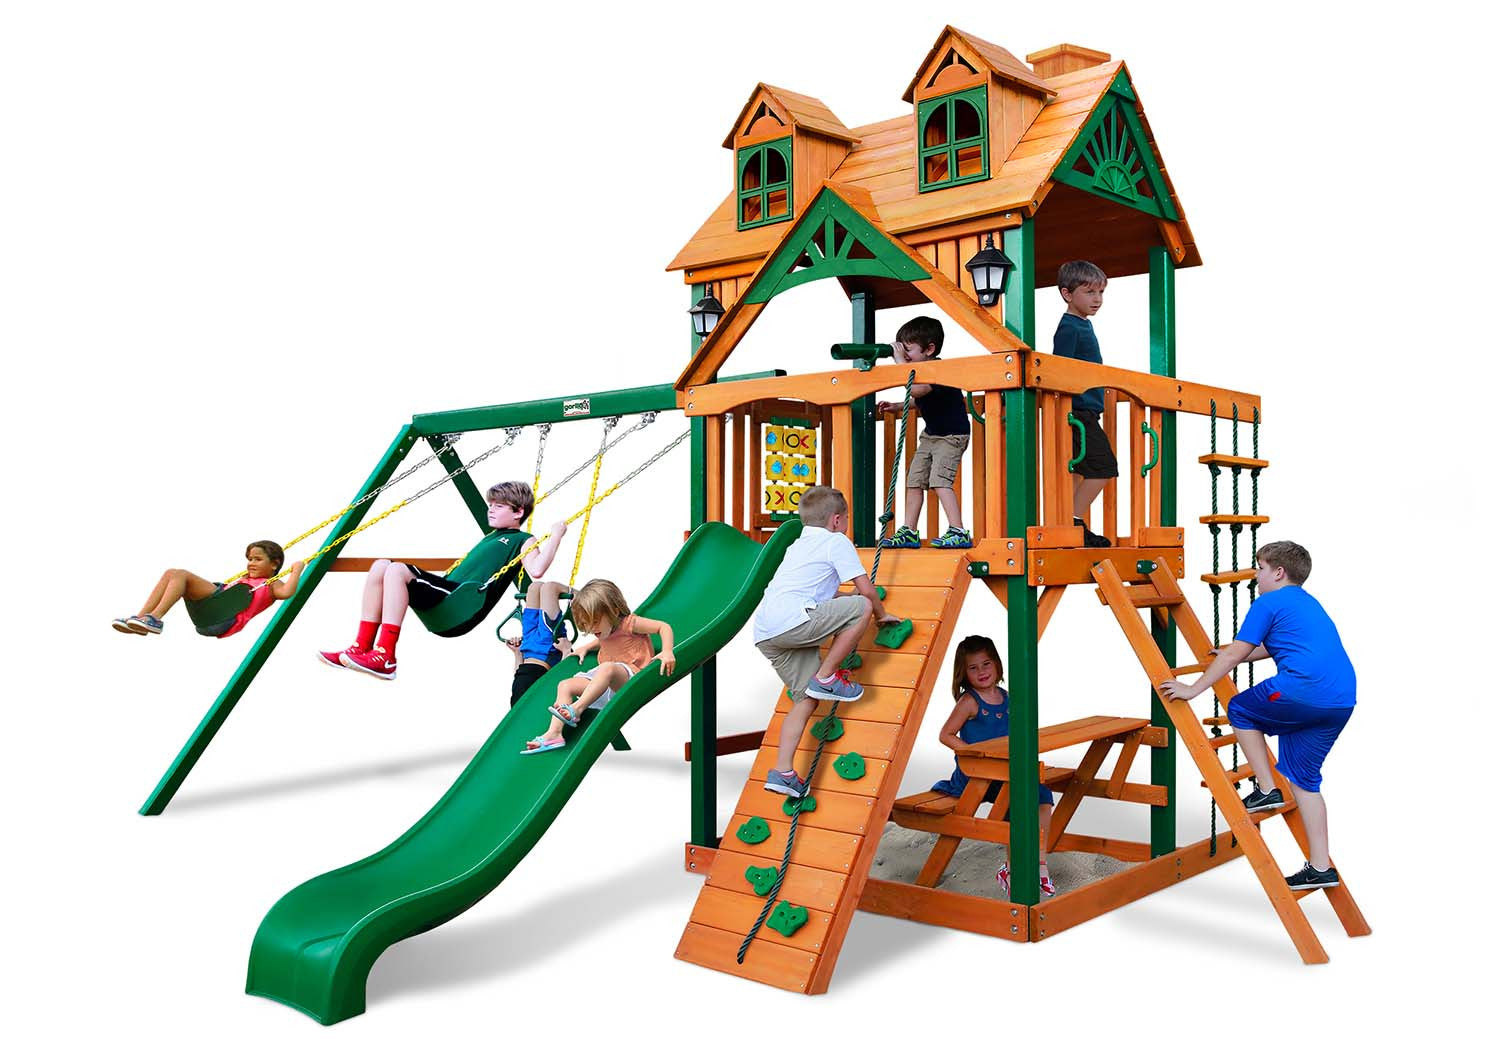 playscape and rebuild new set playset update with repair old orig ons your add upgrade services equipment accessories swing parts can repairs